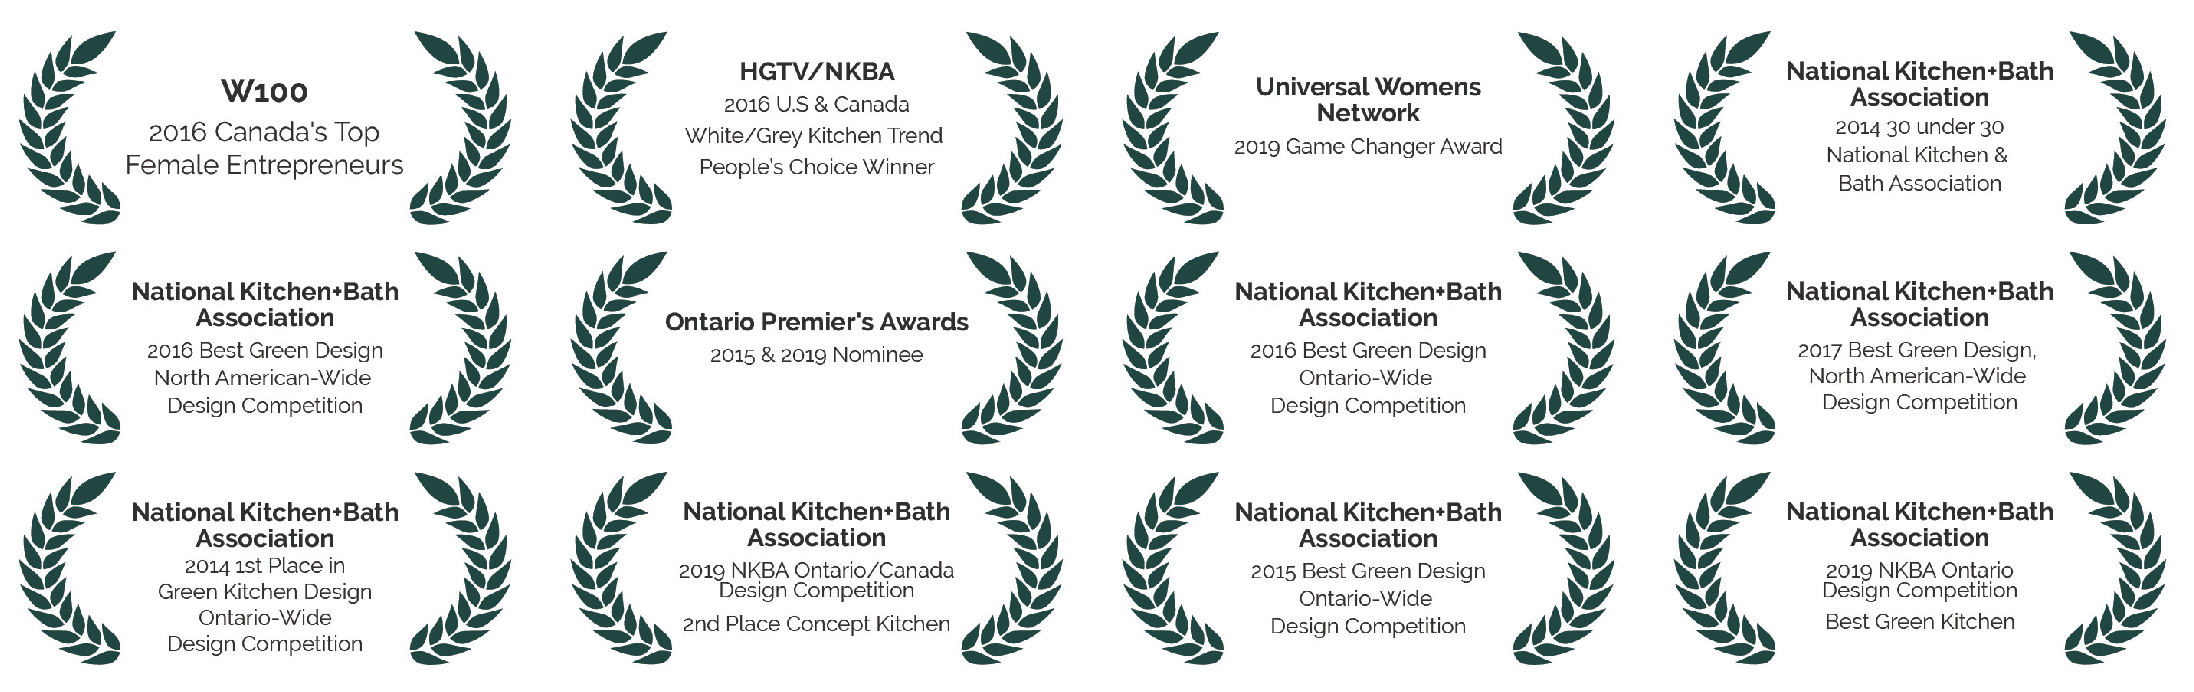 A list of business and design awards given to Cassandra.